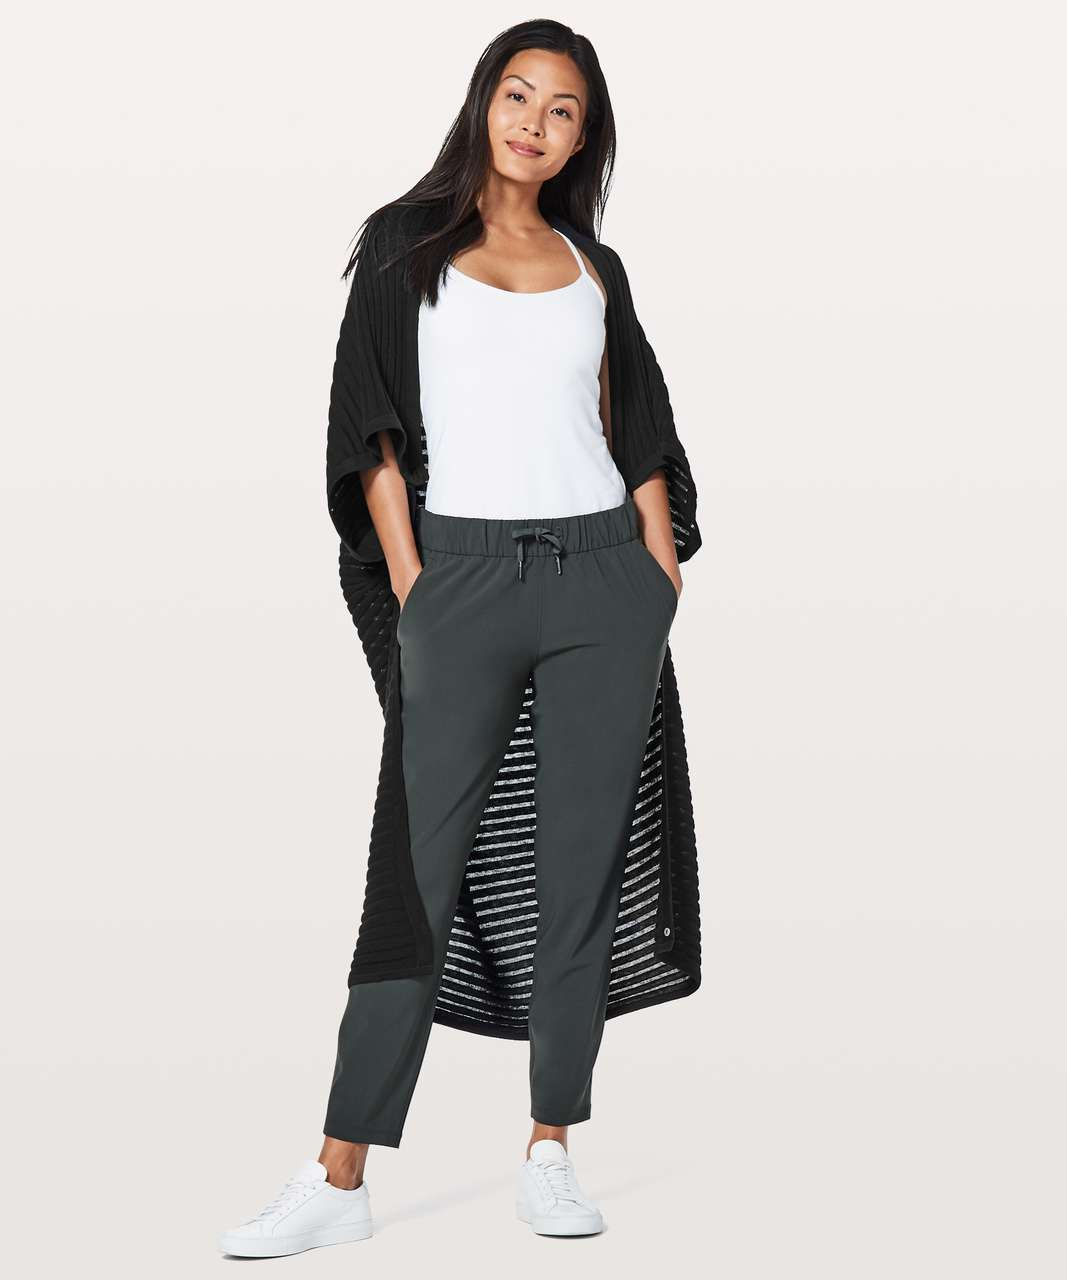 Lululemon Rejuvenate Wrap *Transformational (Stripe) - Black